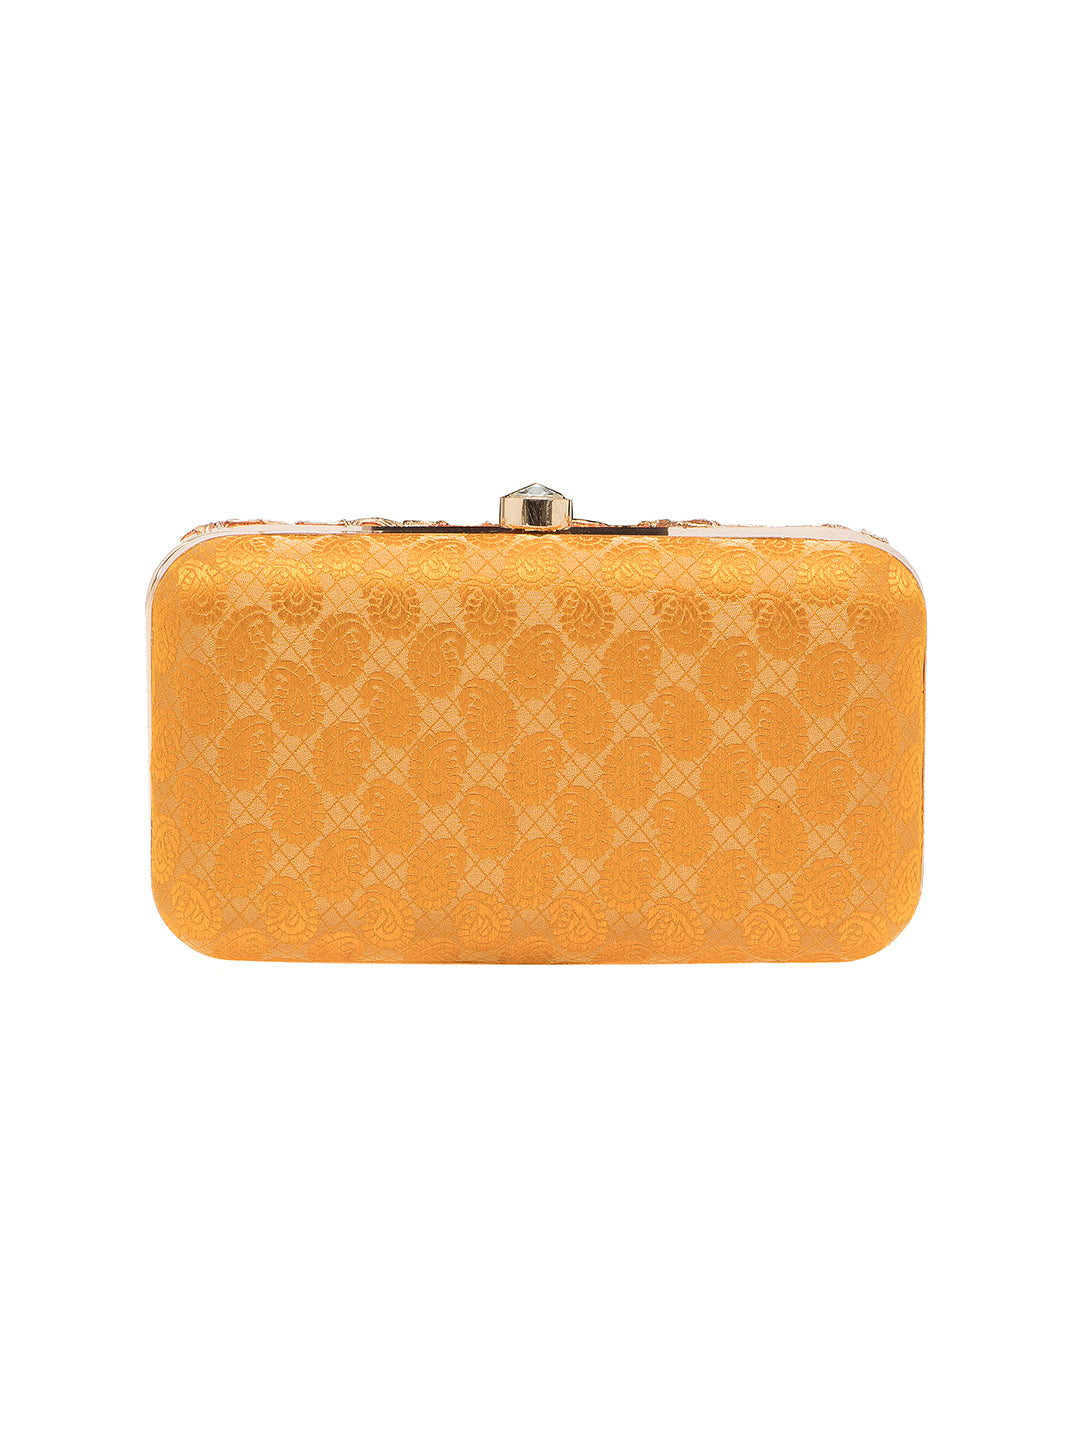 For women who love to flaunt classy accessories, this orange clutch from TARUSA is a must-buy. Crafted from fabric, this clutch is durable and exhibits a embroidered pattern. Featuring a chain sling, this box clutch will complement most of your party attire.